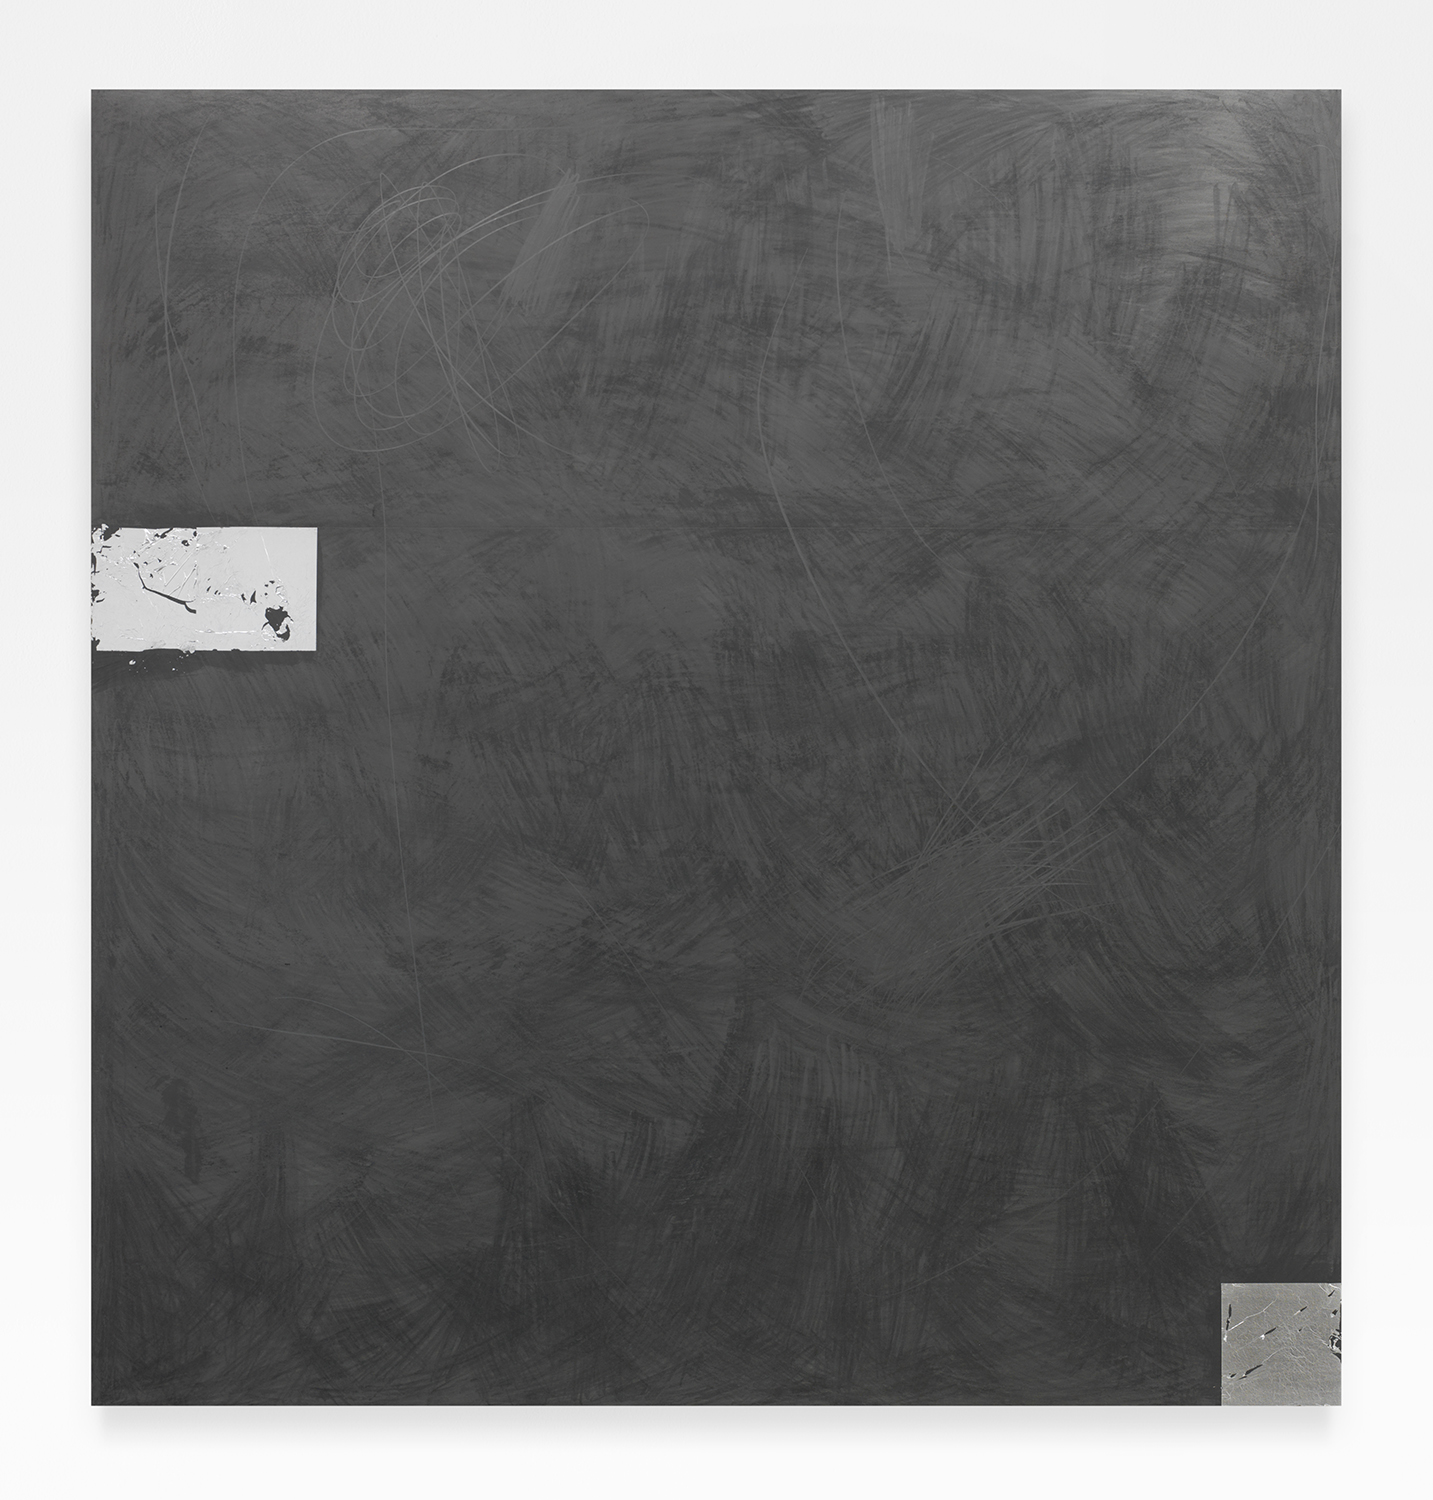 Brendan Lynch  All Nighter , 2014 Graphite and aluminium leaf on wood 60 x 57 inches